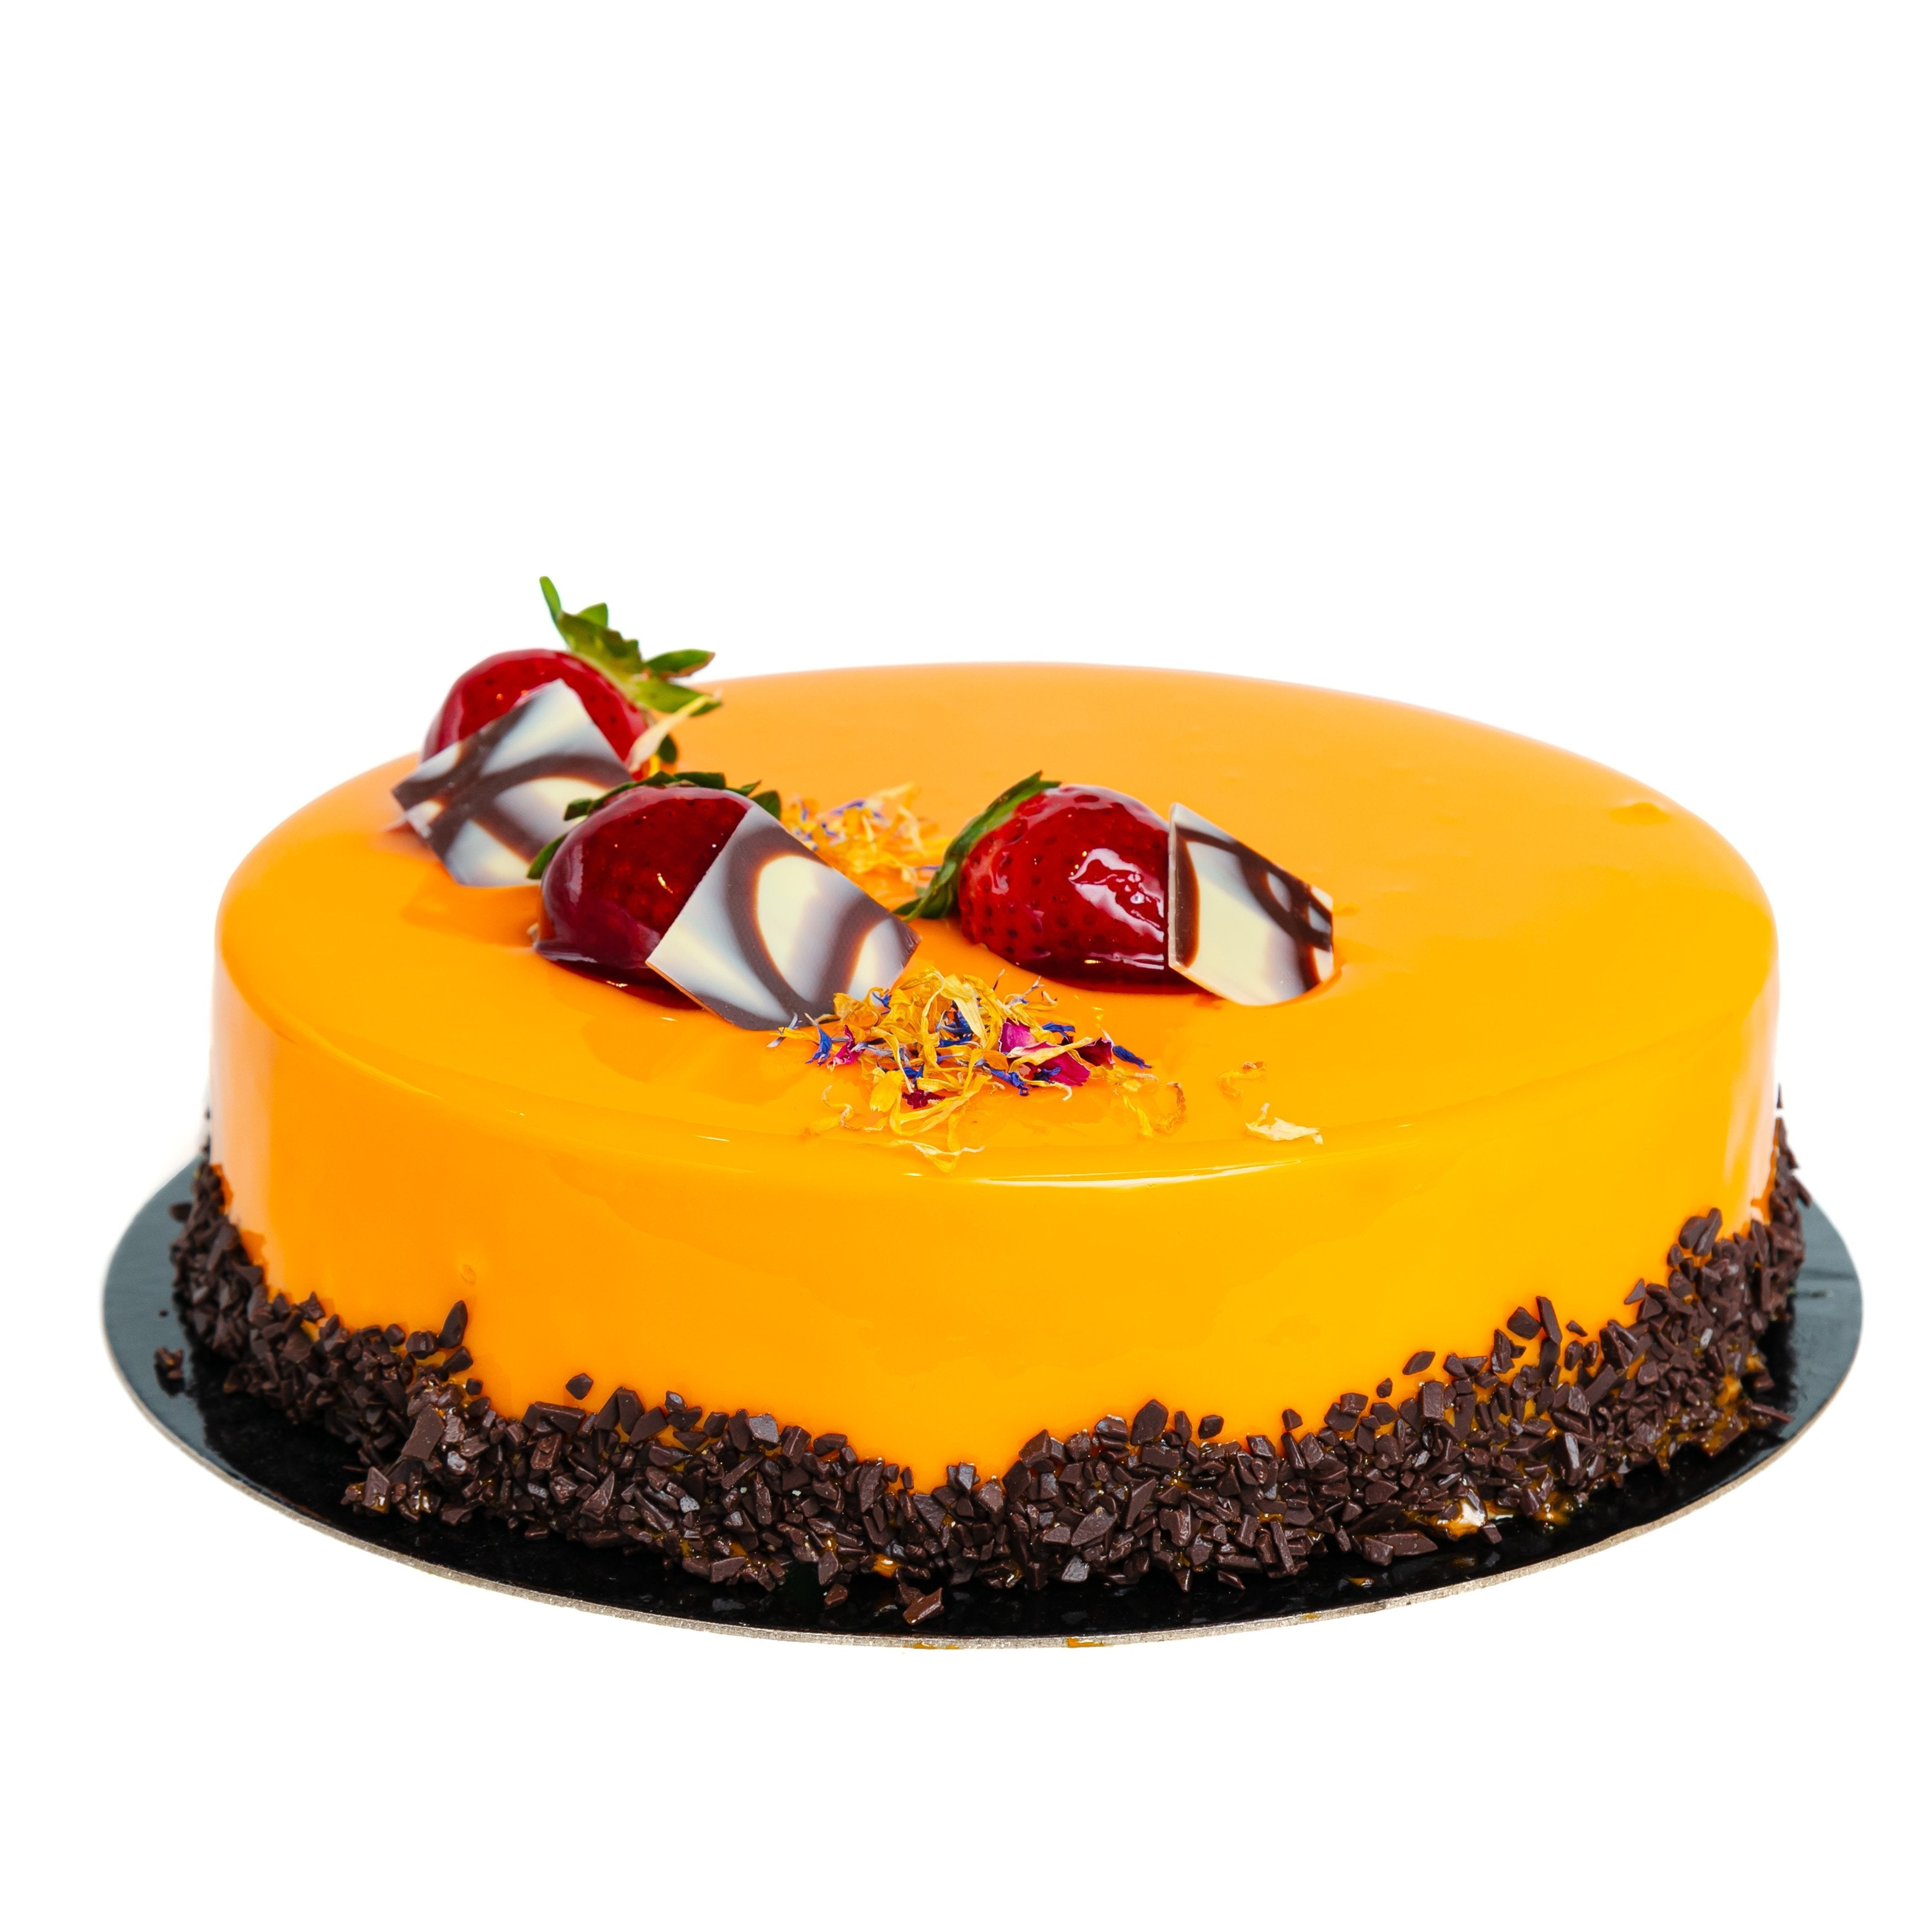 Caramel Semifreddo Cake with yellow mirror glaze and strawberries